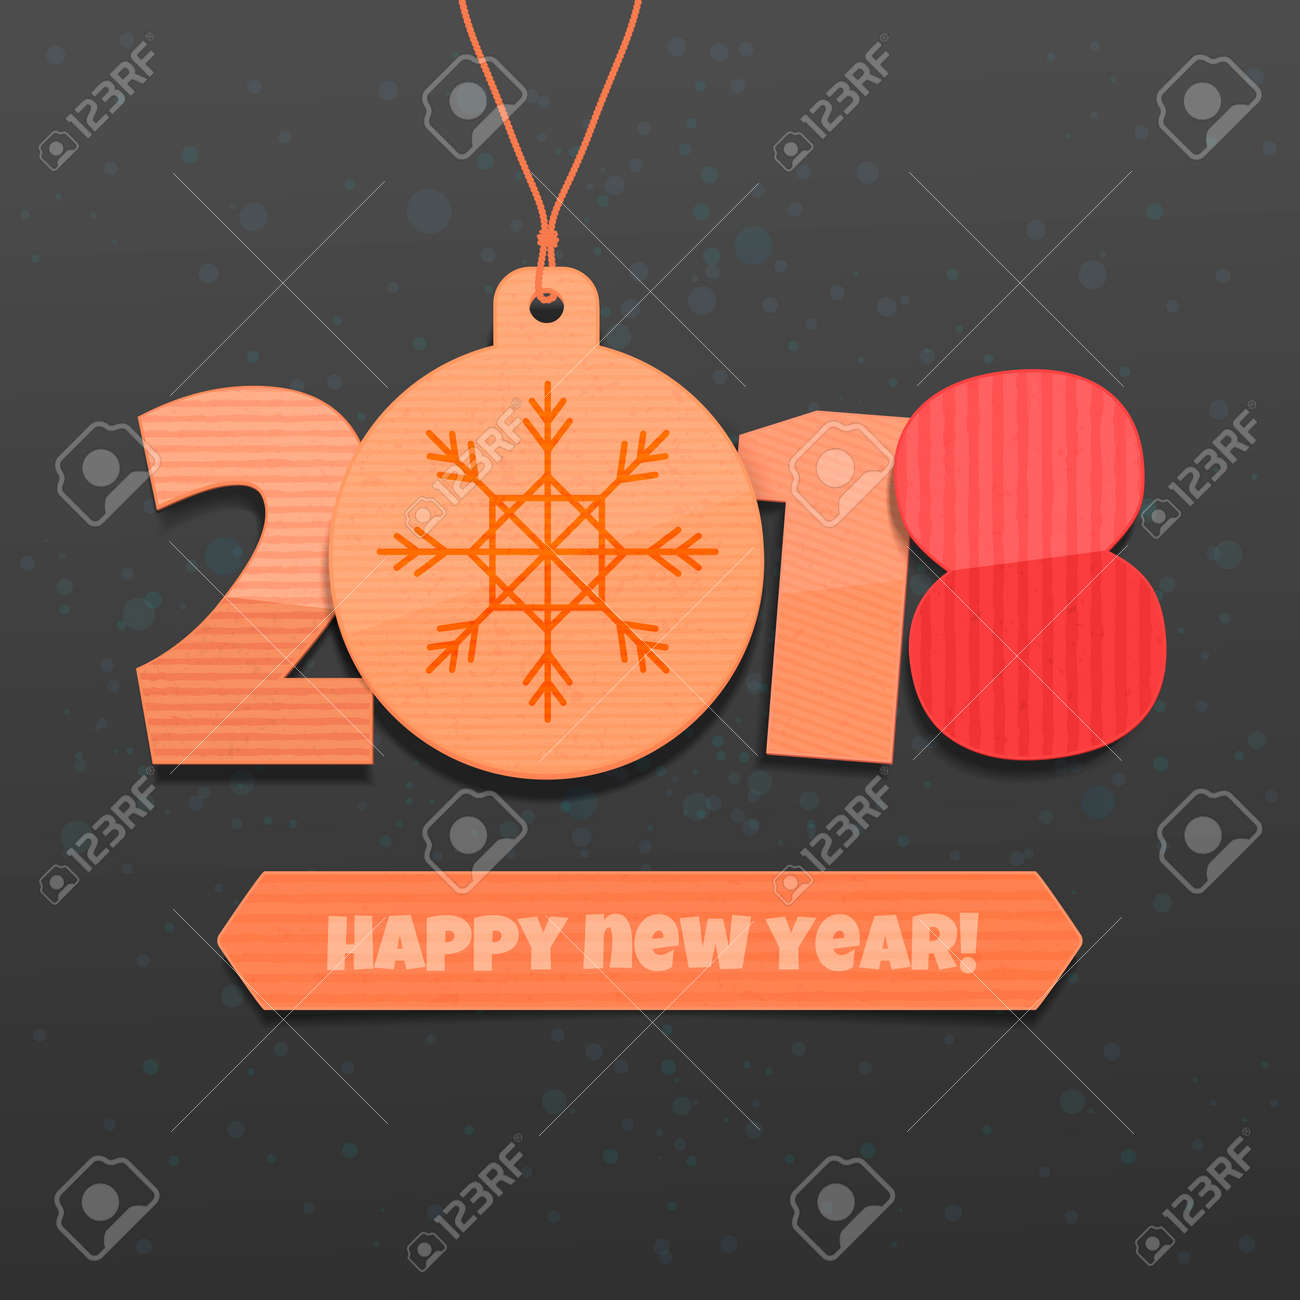 Happy New Year 2018 On A Black Background Design Of A Greeting